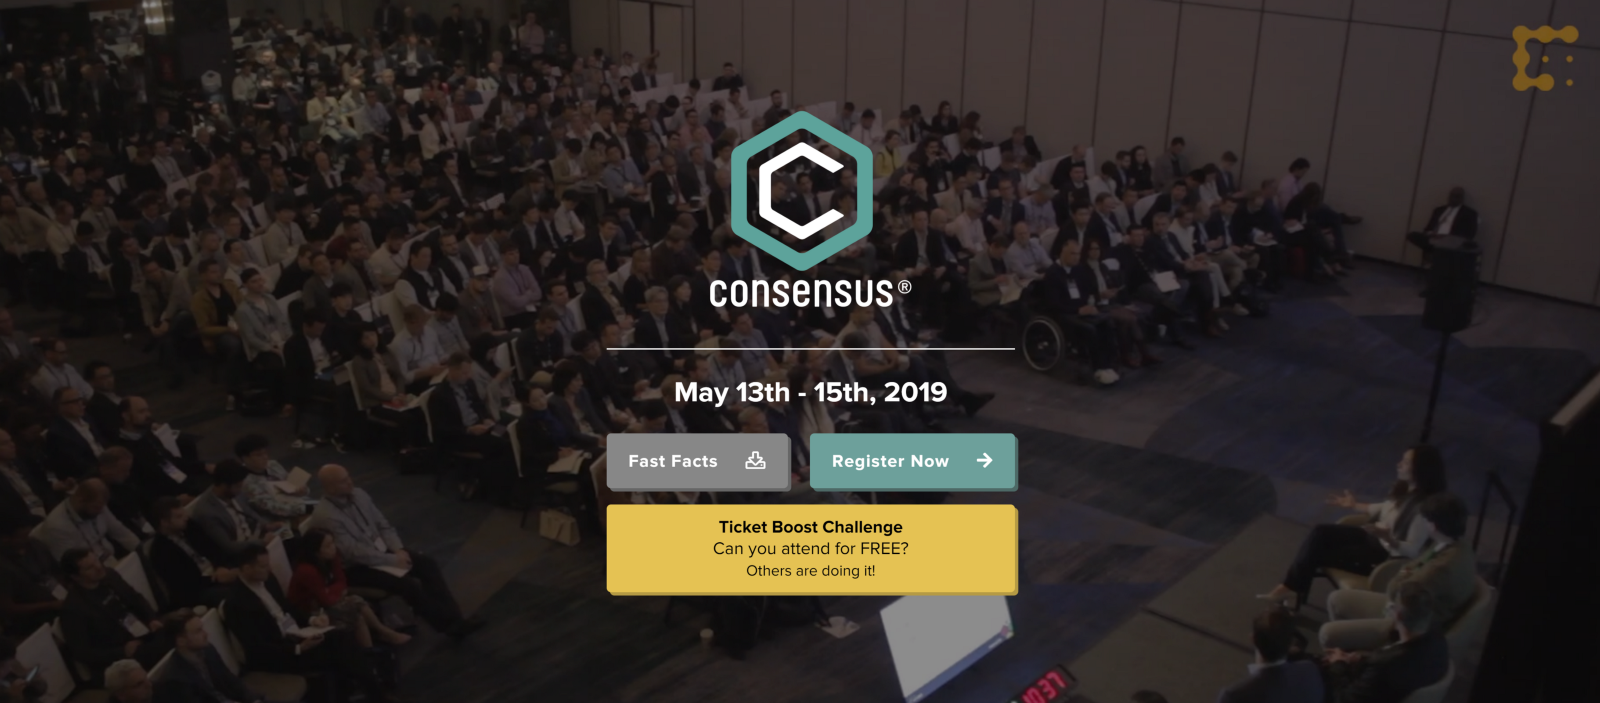 /consensus-blockchain-conference-2019-everything-you-need-to-know-45a2fd016f07 feature image